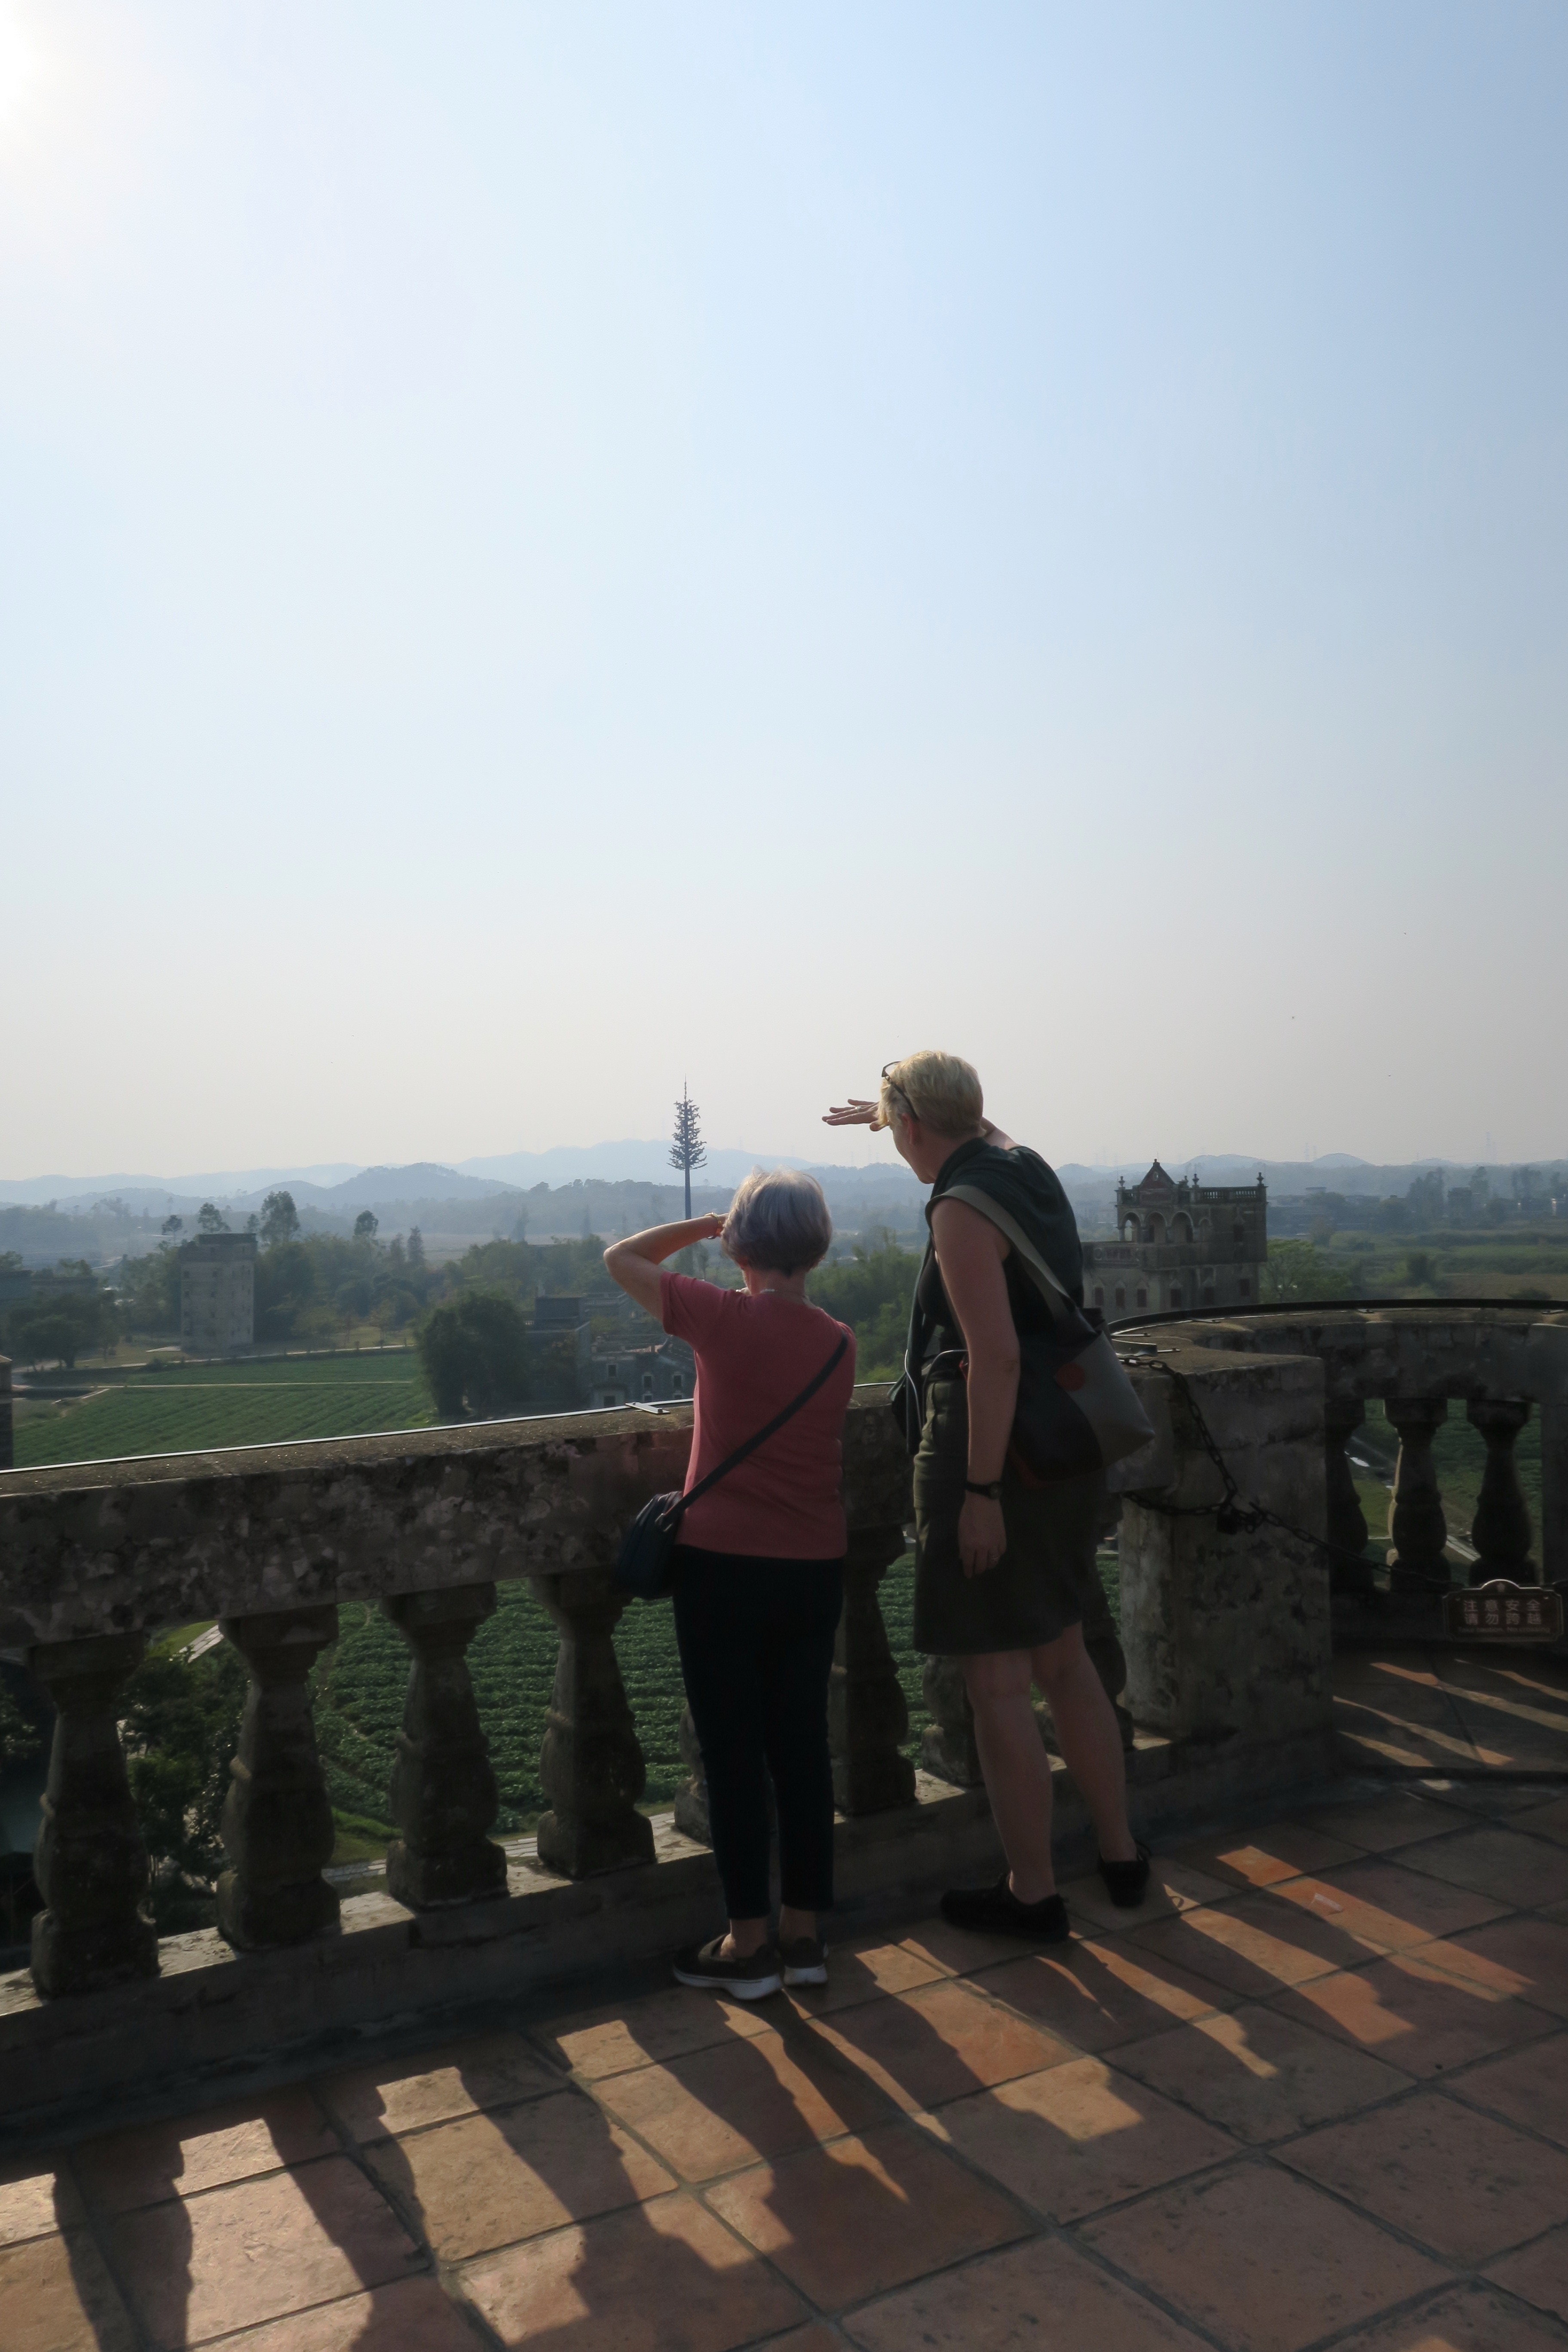 The tigers mouth thoughts on the history and heritage of chinese zili village tangkou kaiping taking in the view from the top one of the unesco world heritage listed mansions in zili built by overseas chinese in the publicscrutiny Images